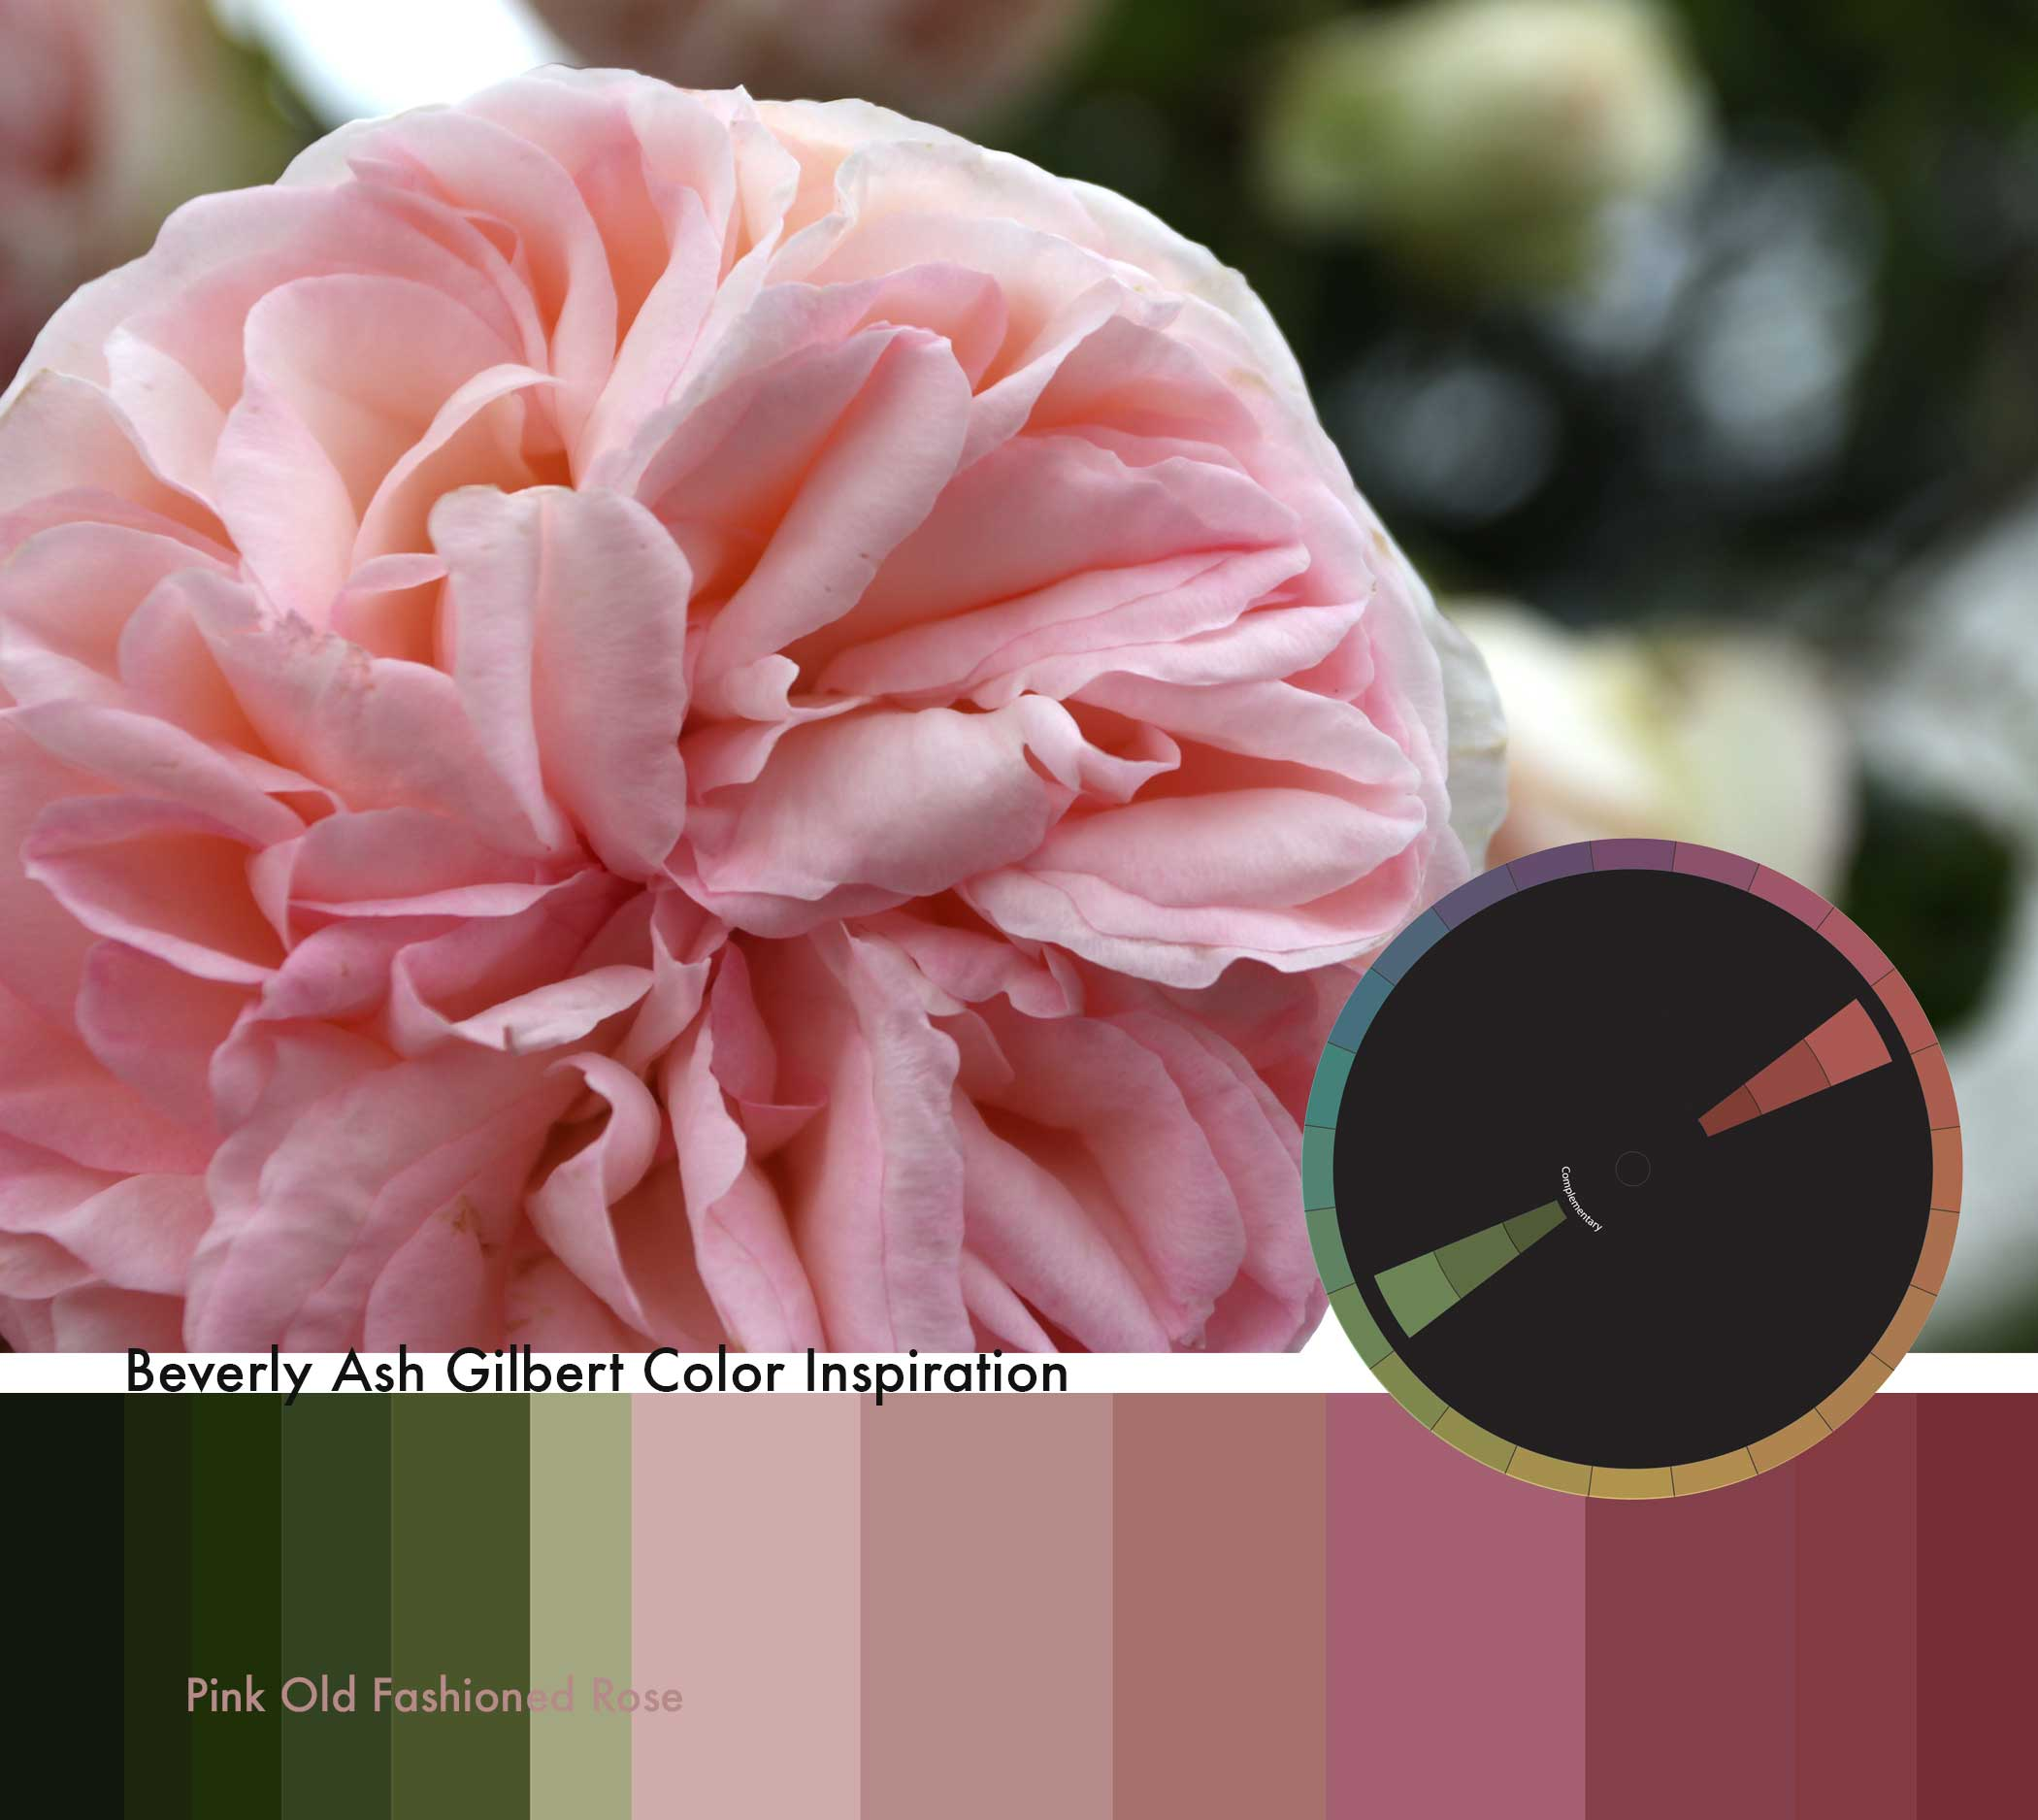 ColorInspiration_PinkOldFashionRose_small.jpg